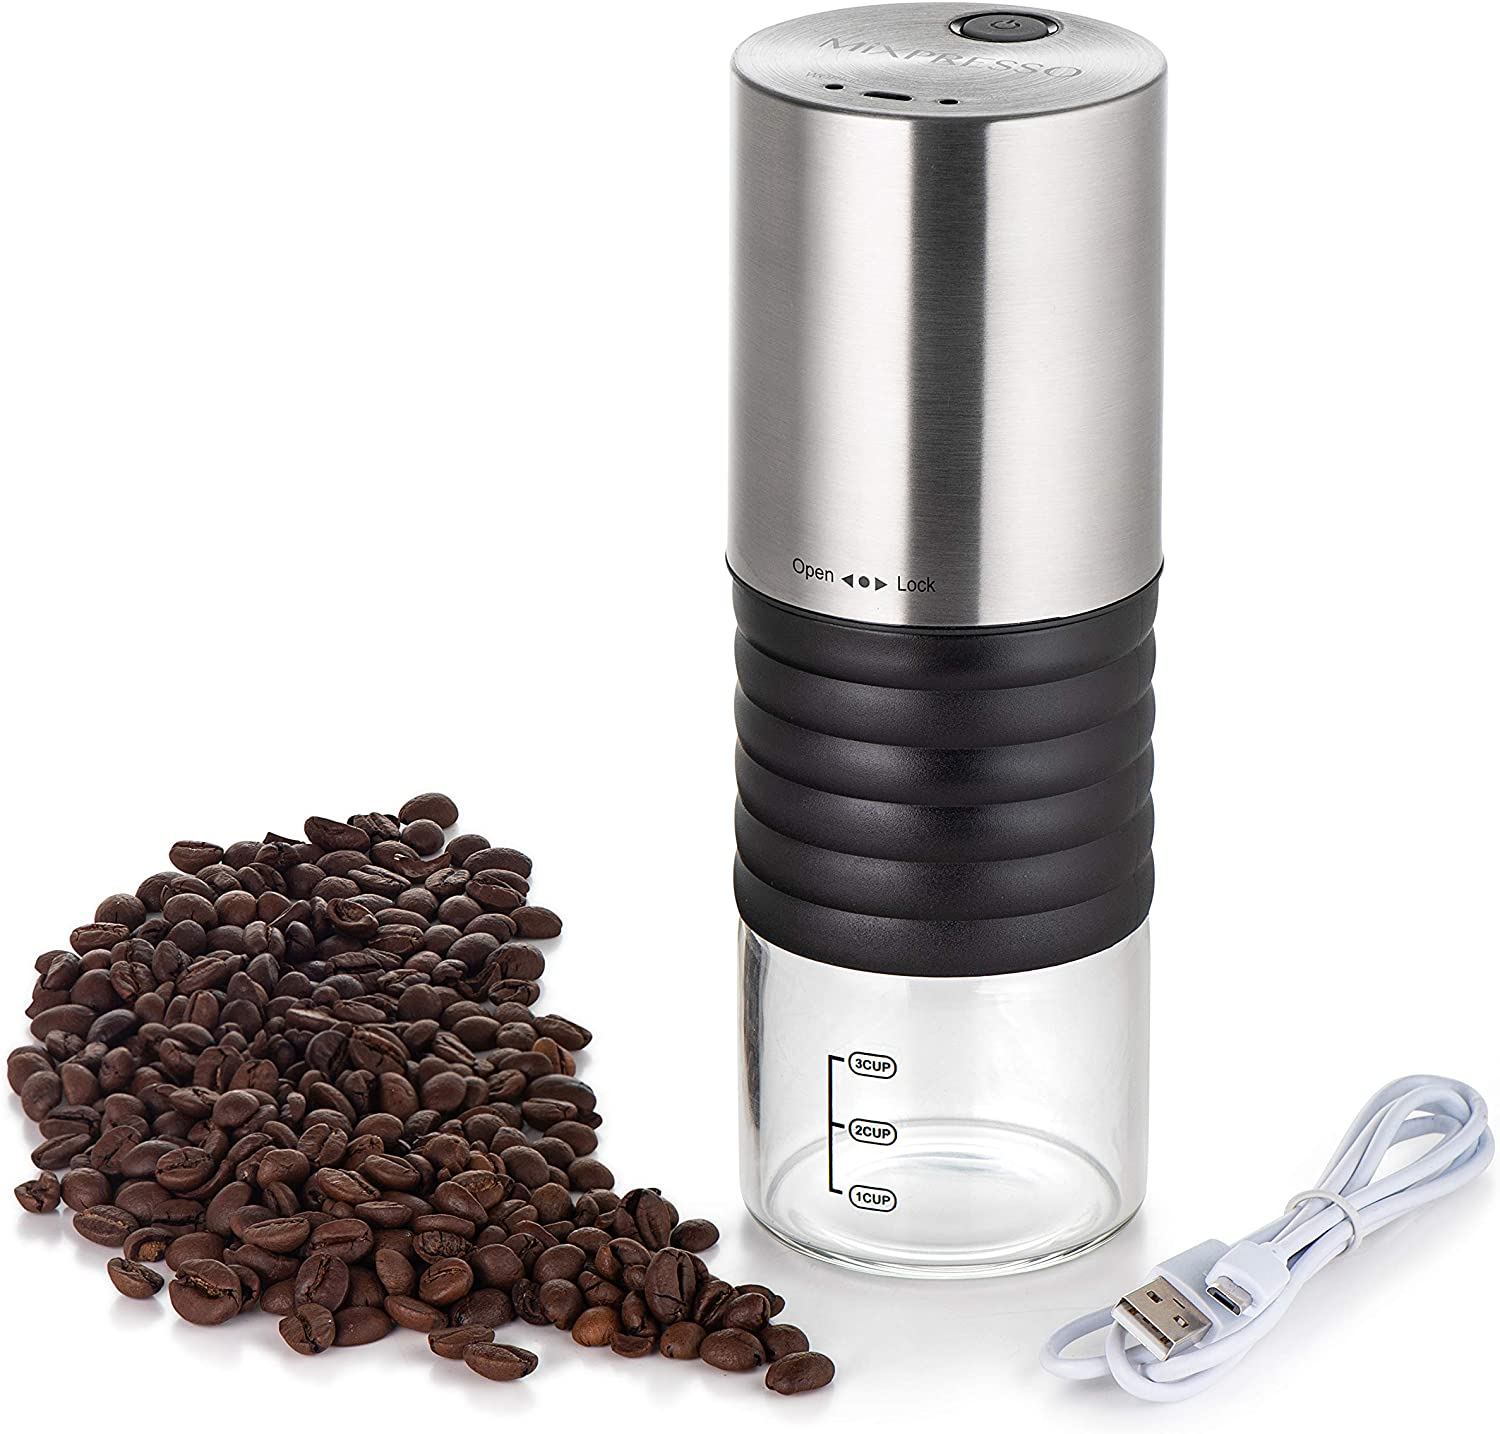 Mixpresso Electric Coffee Grinder With USB And On Easy Max All items in the store 66% OFF Off